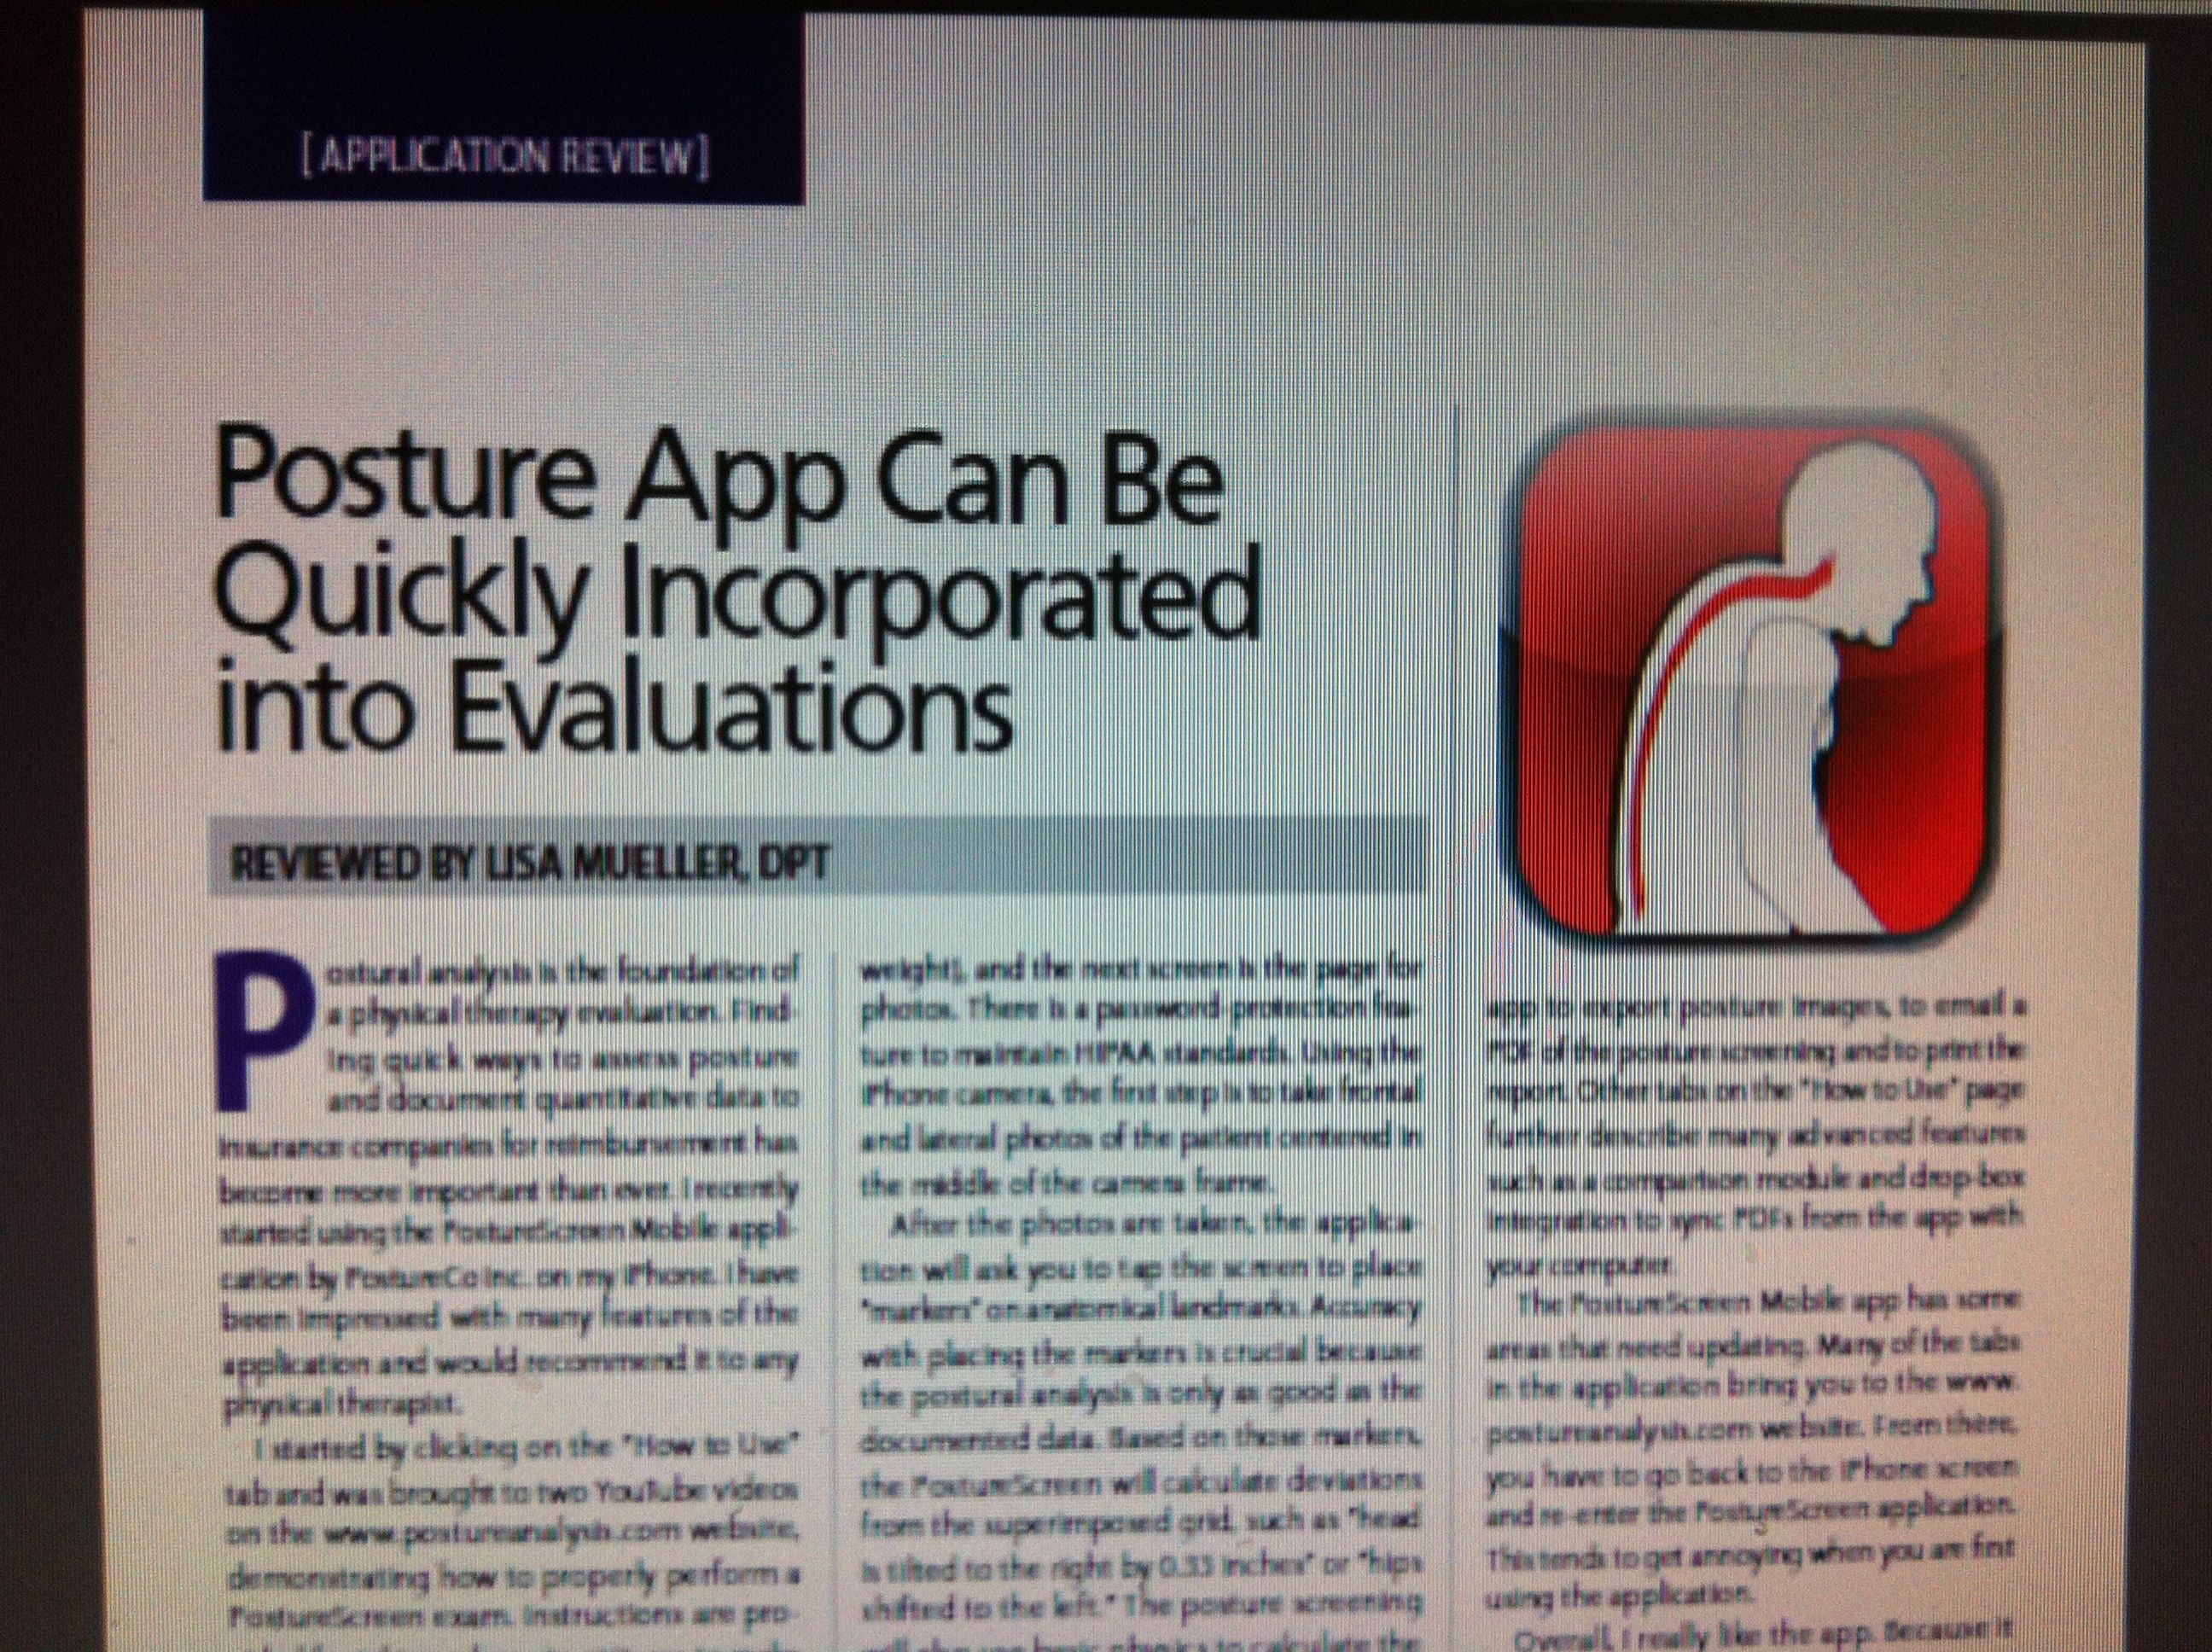 Posturescreen Posture App Can Be Quickly Incorporated